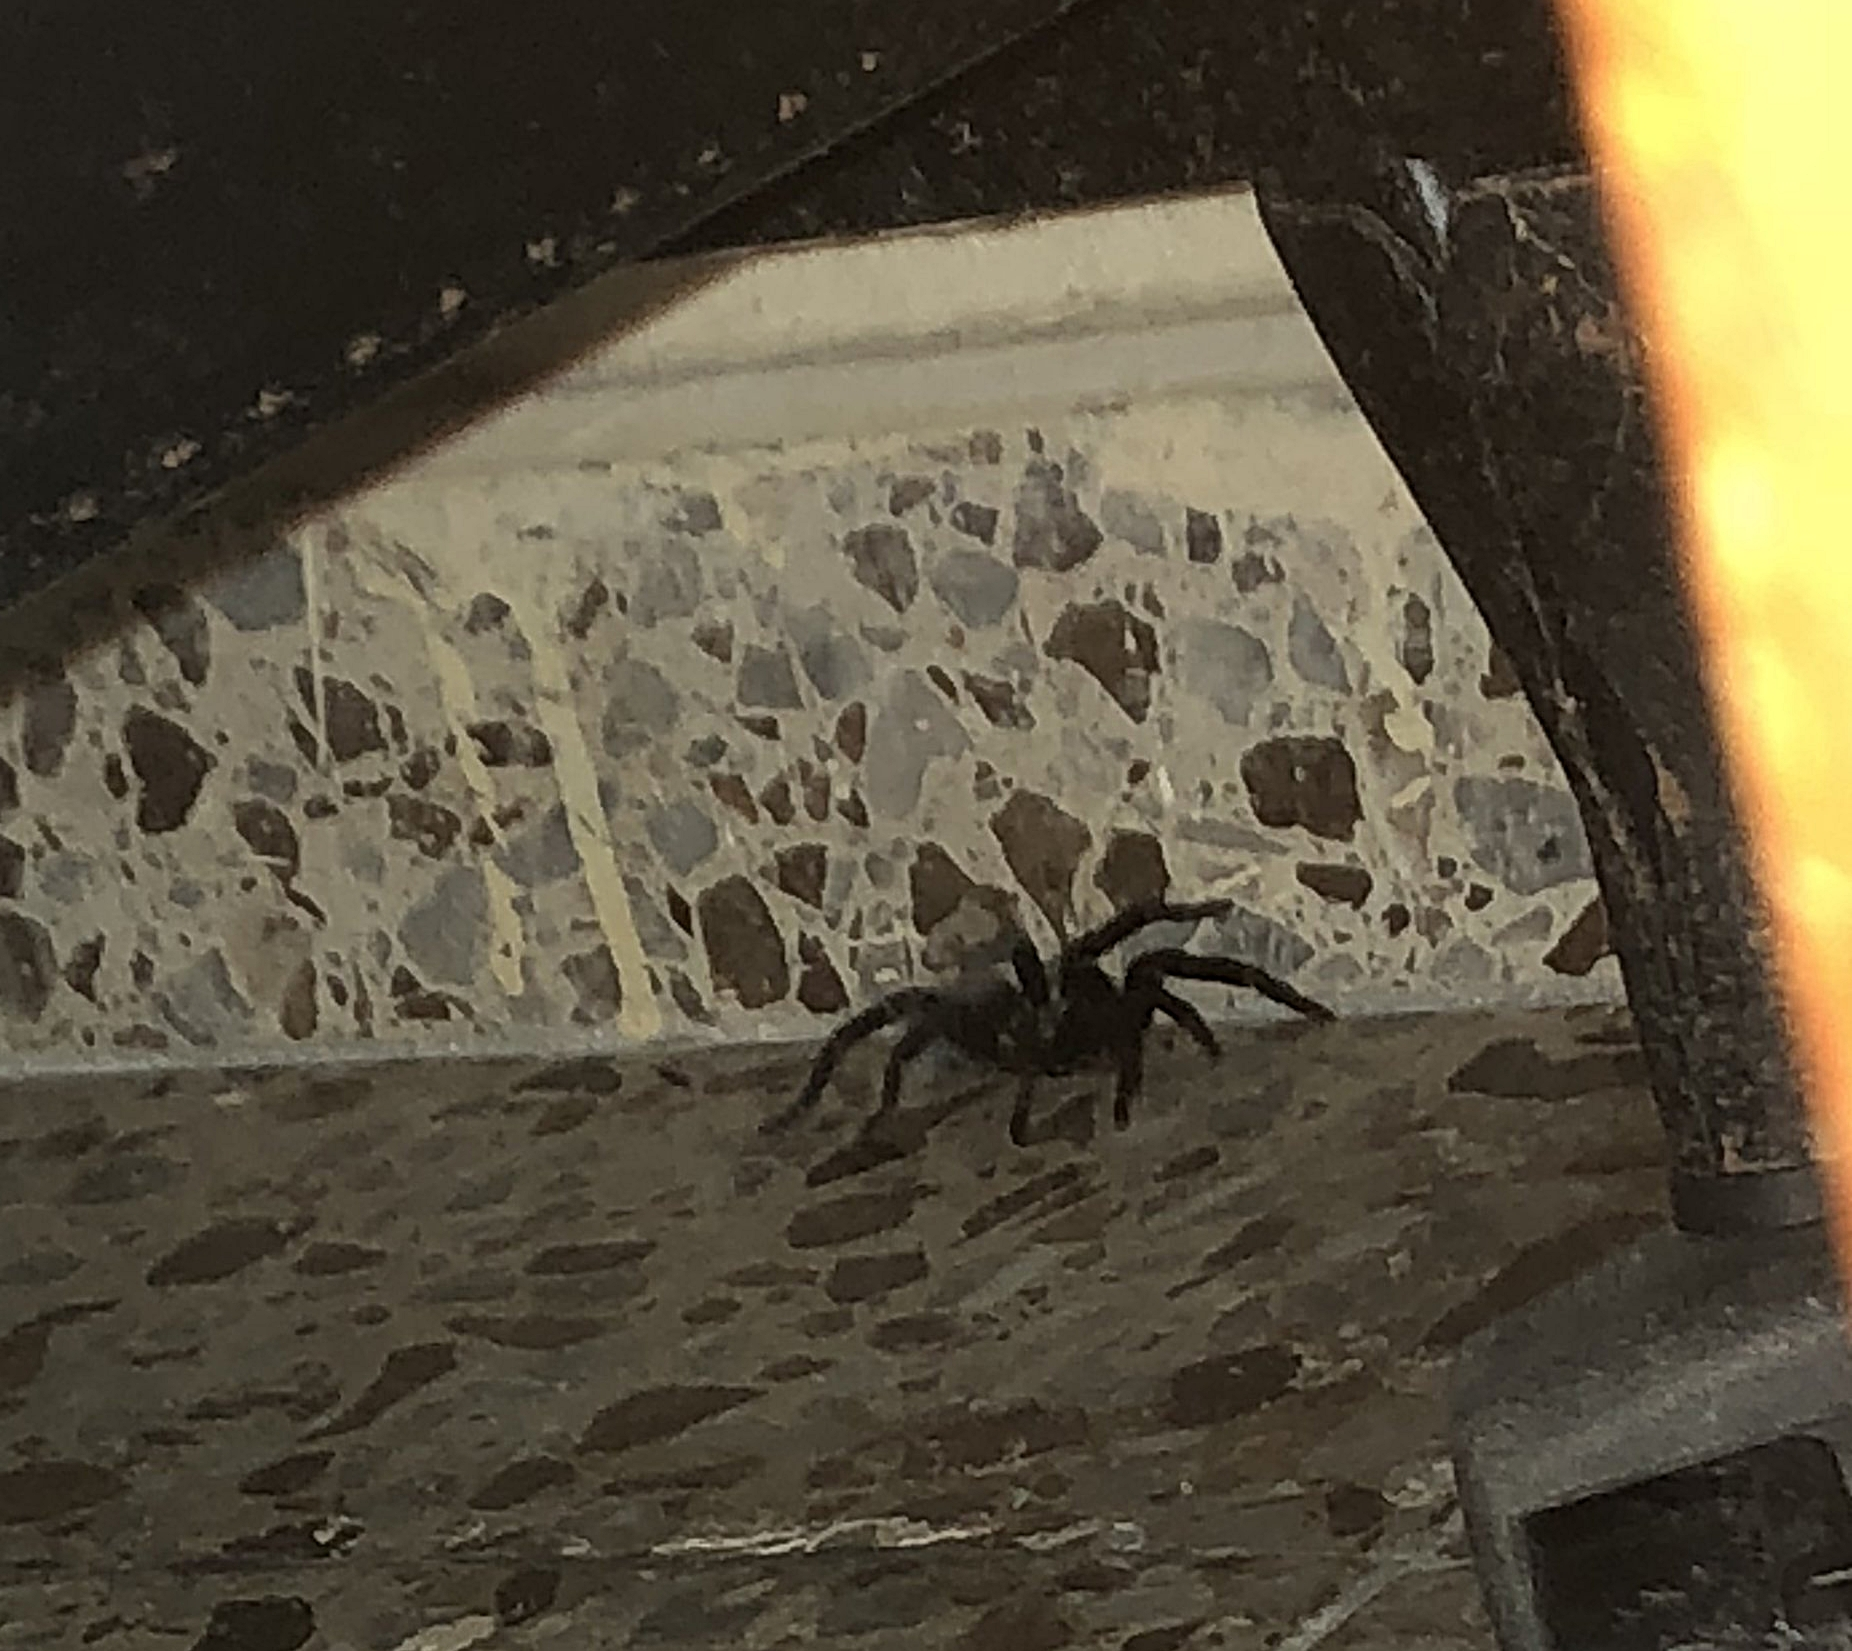 Our tarantula after he escaped the shoe and ran under the bed.